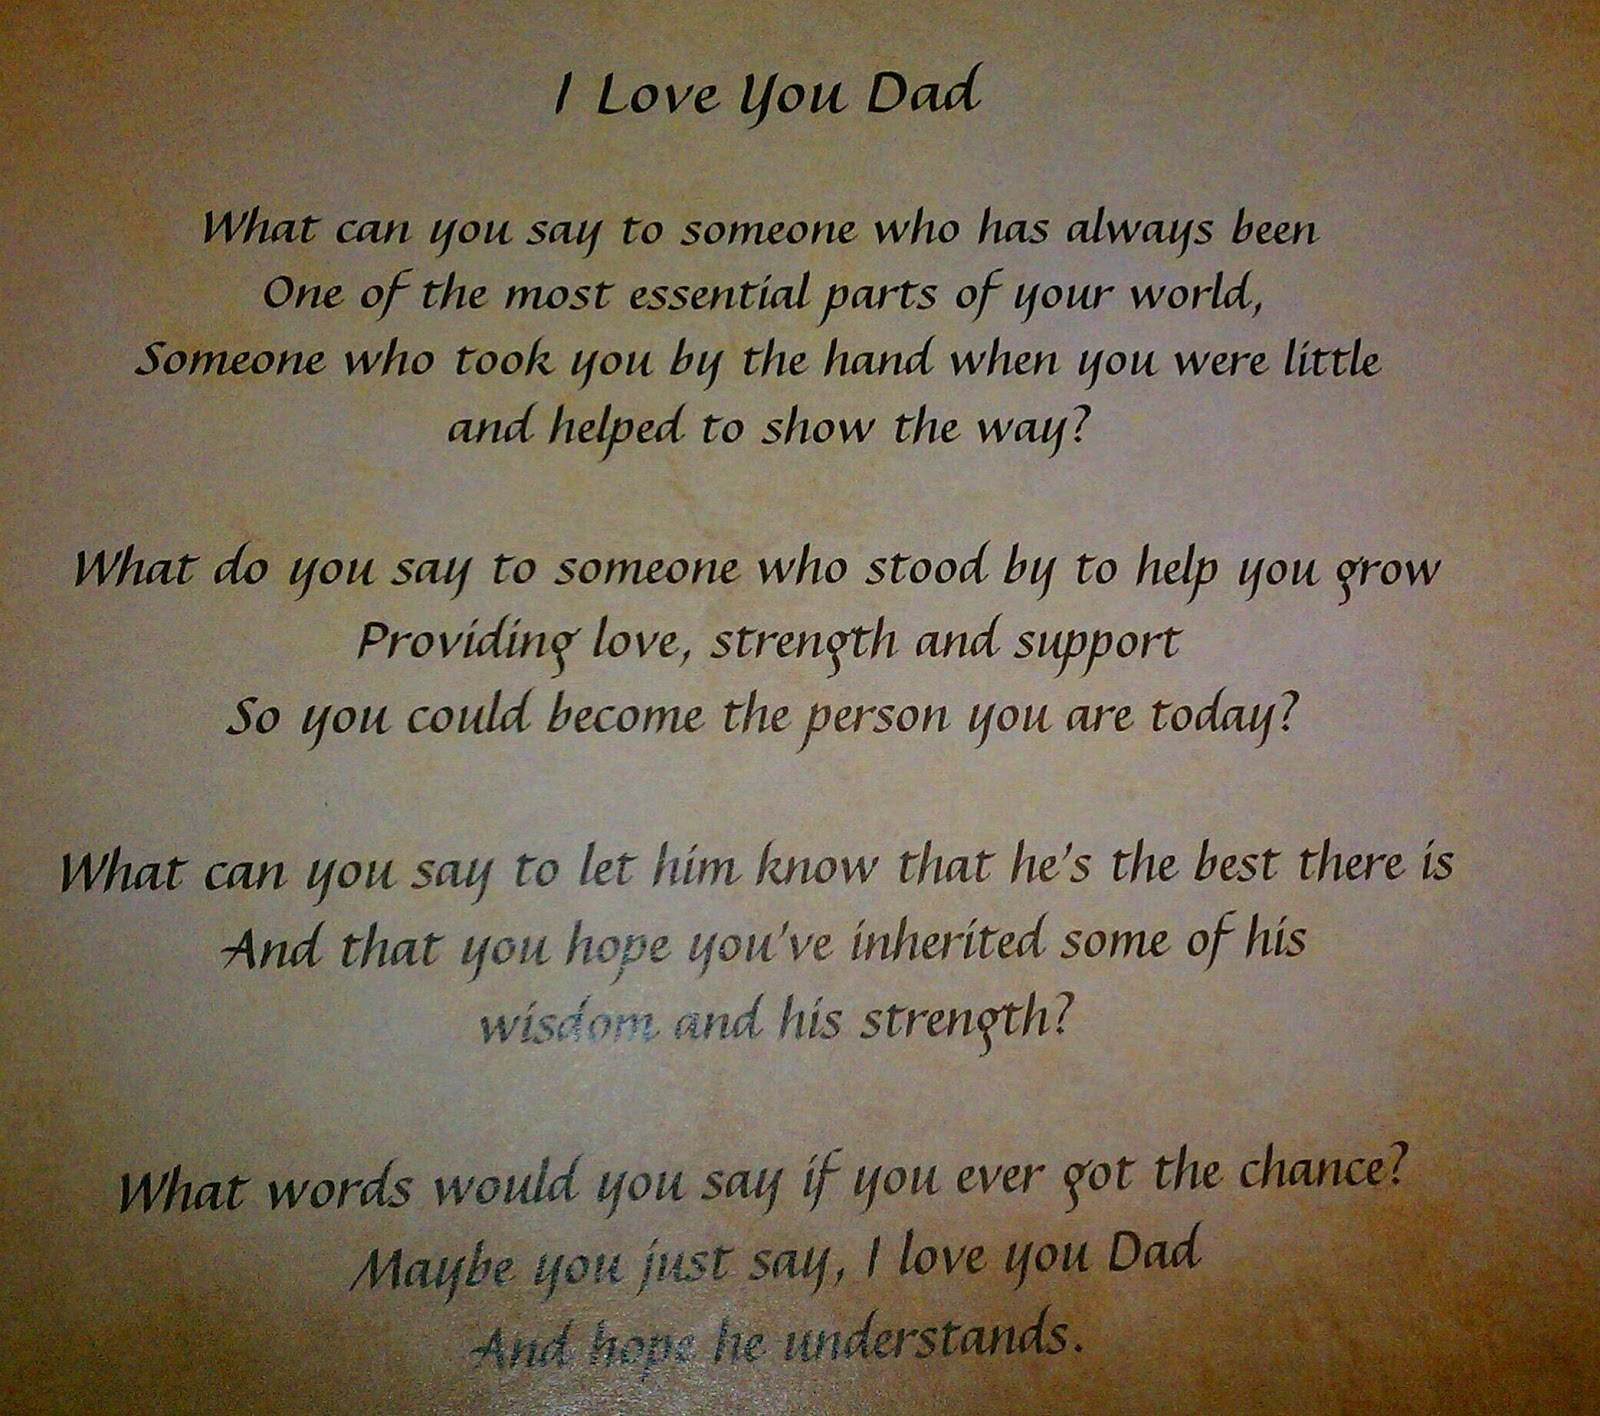 Loss of a father poem